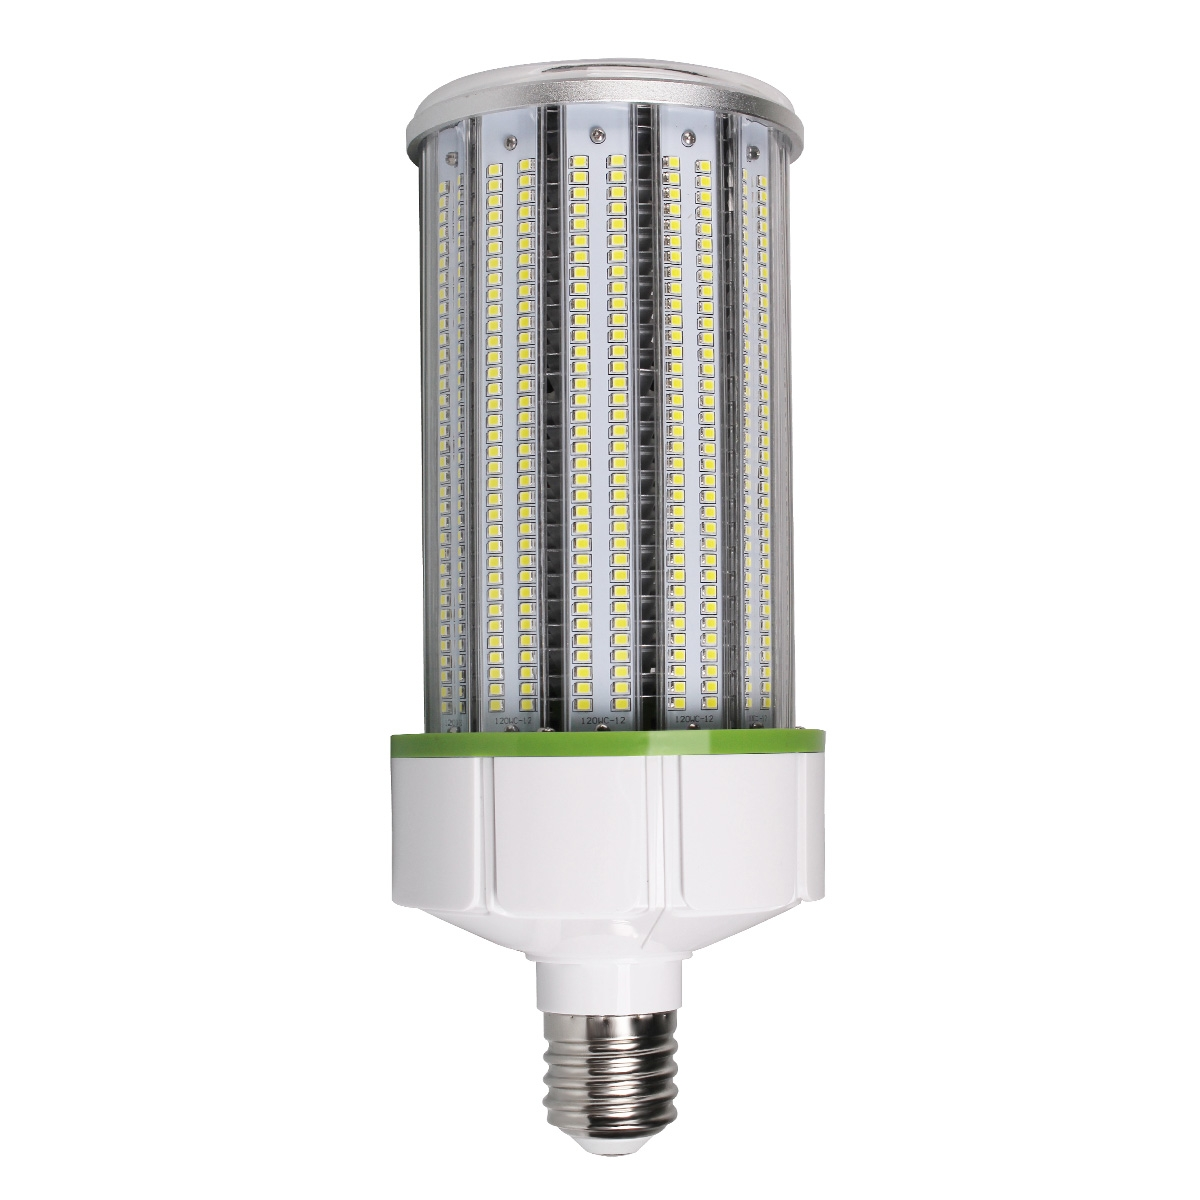 Fluorescent Bulbs Lighting Ever Top Quality Led Fixtures